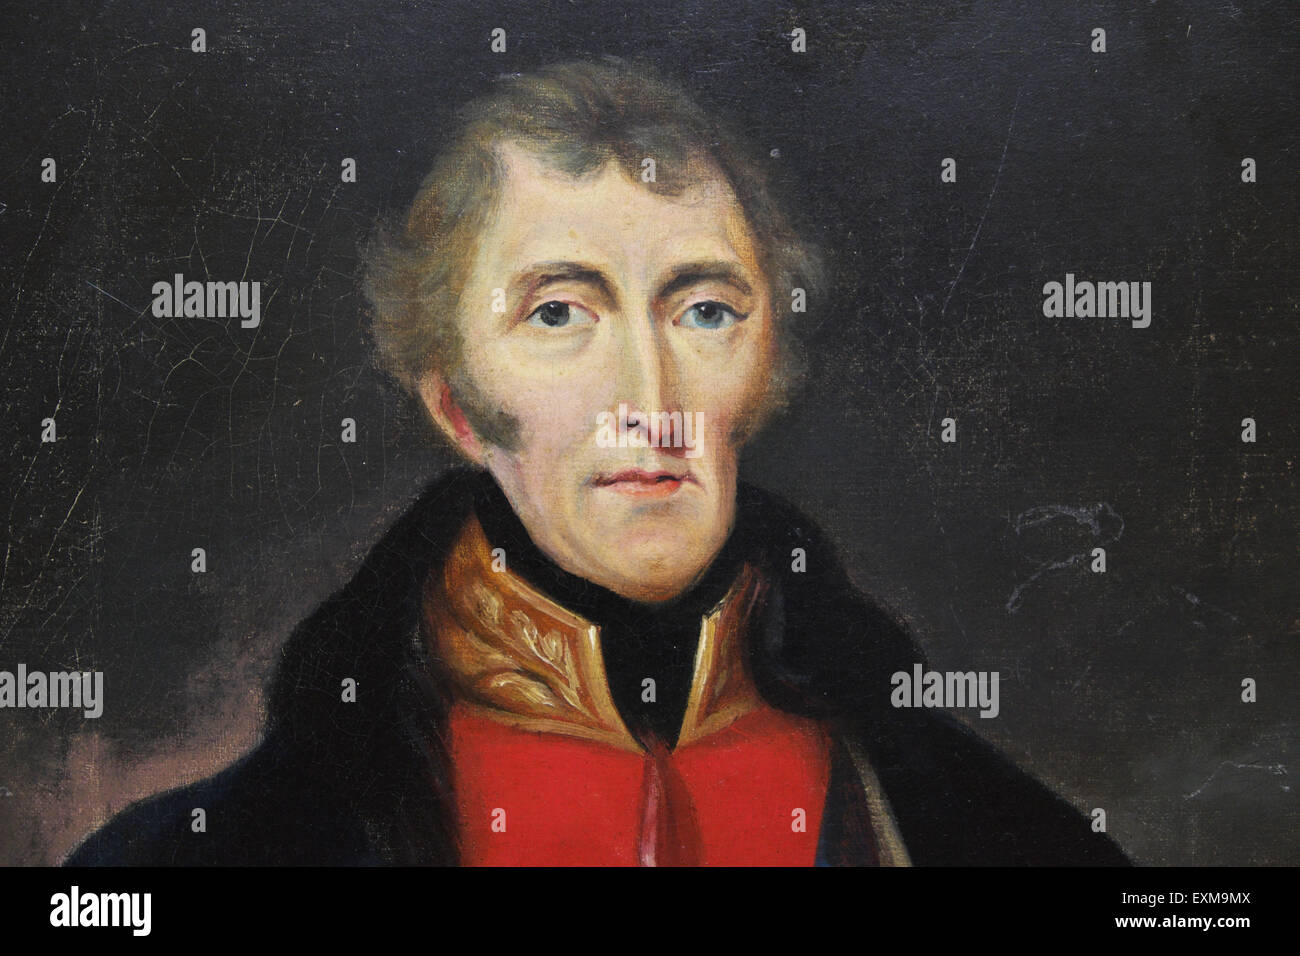 The Duke of Wellington portrait painting - Stock Image